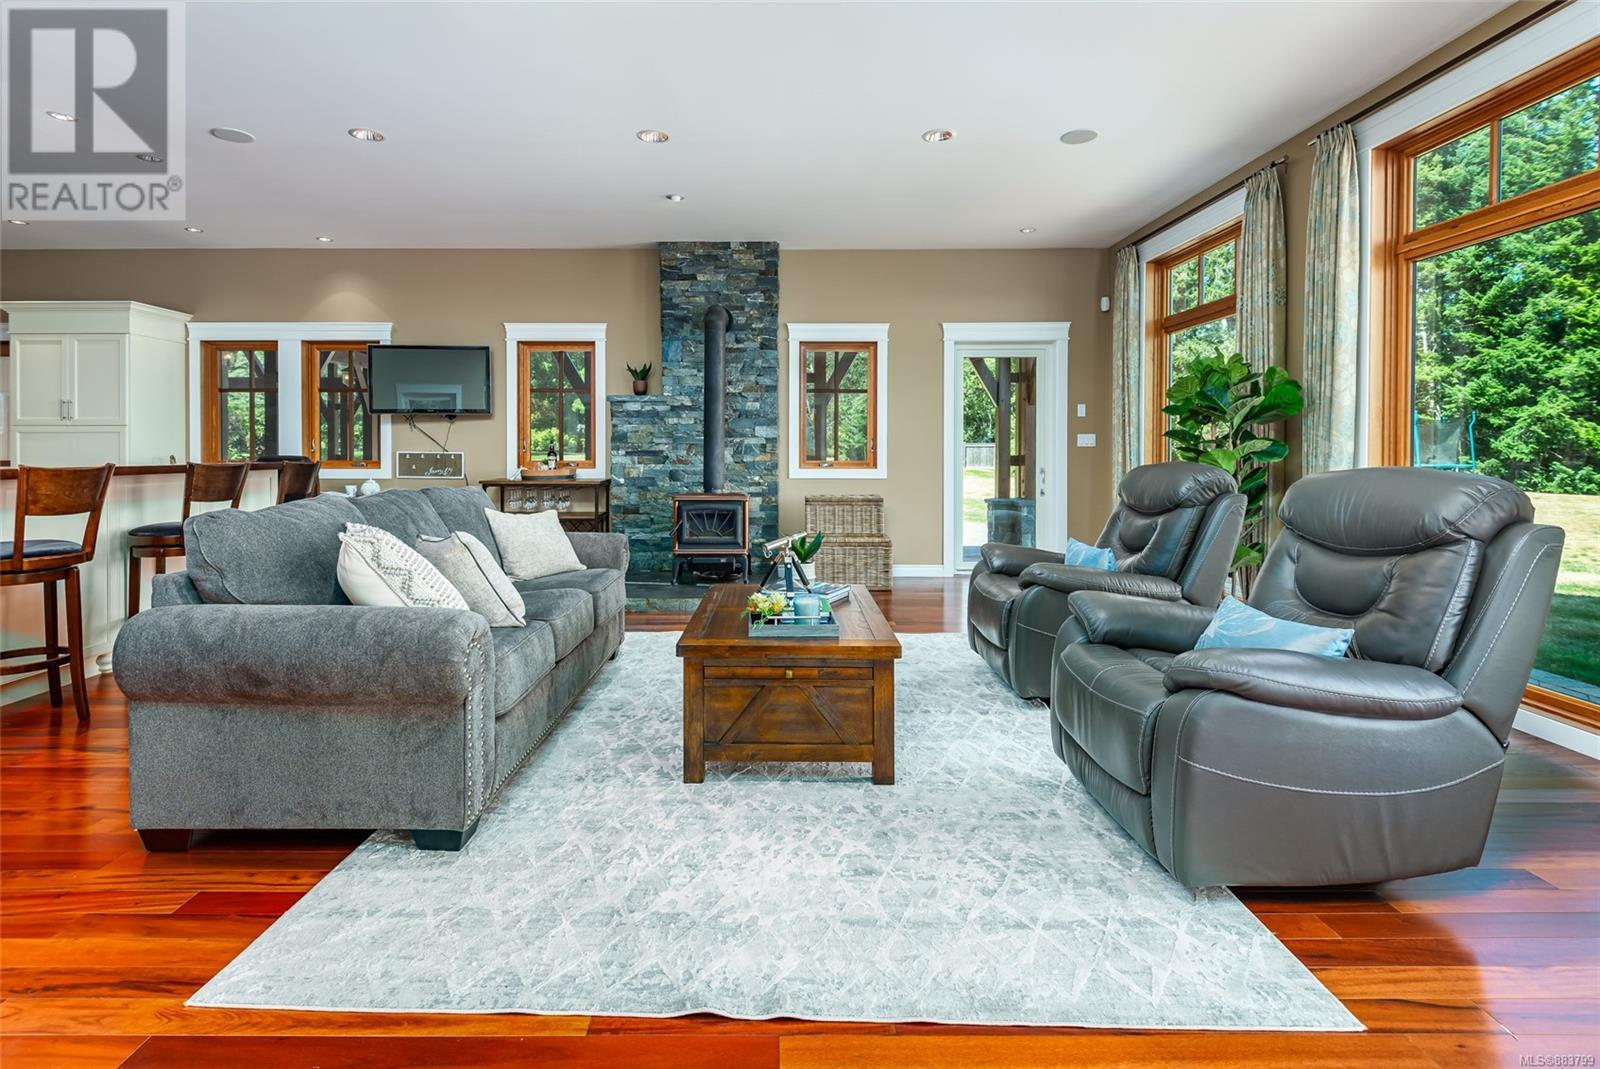 MLS® #883799 - Courtenay House For sale Image #24